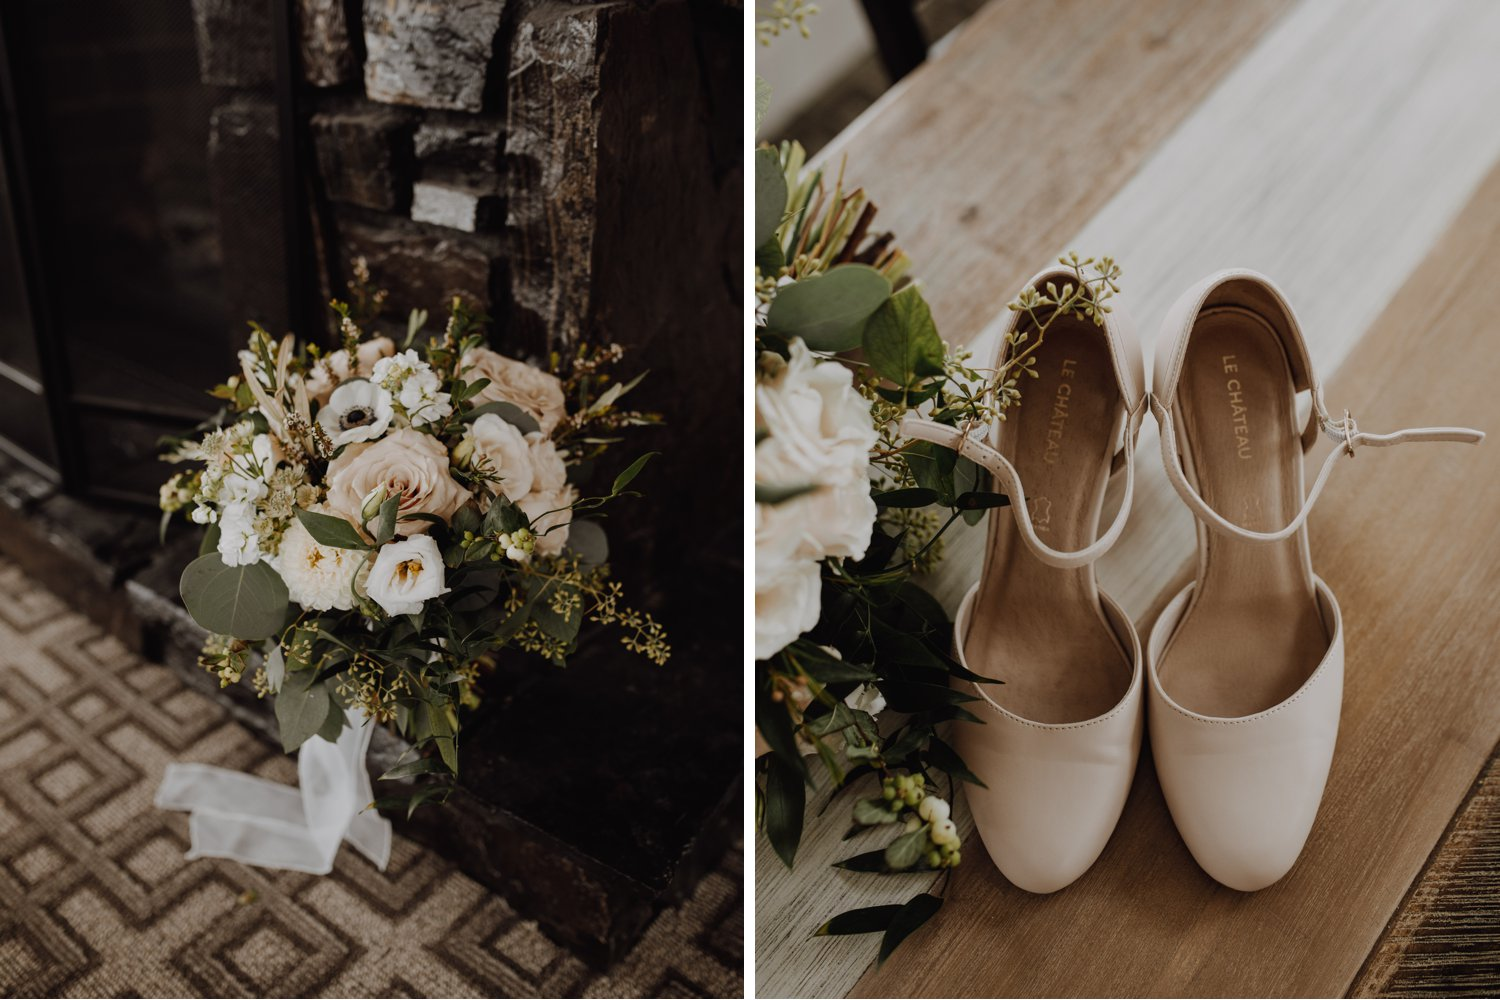 Banff Wedding - shoes and bouquet